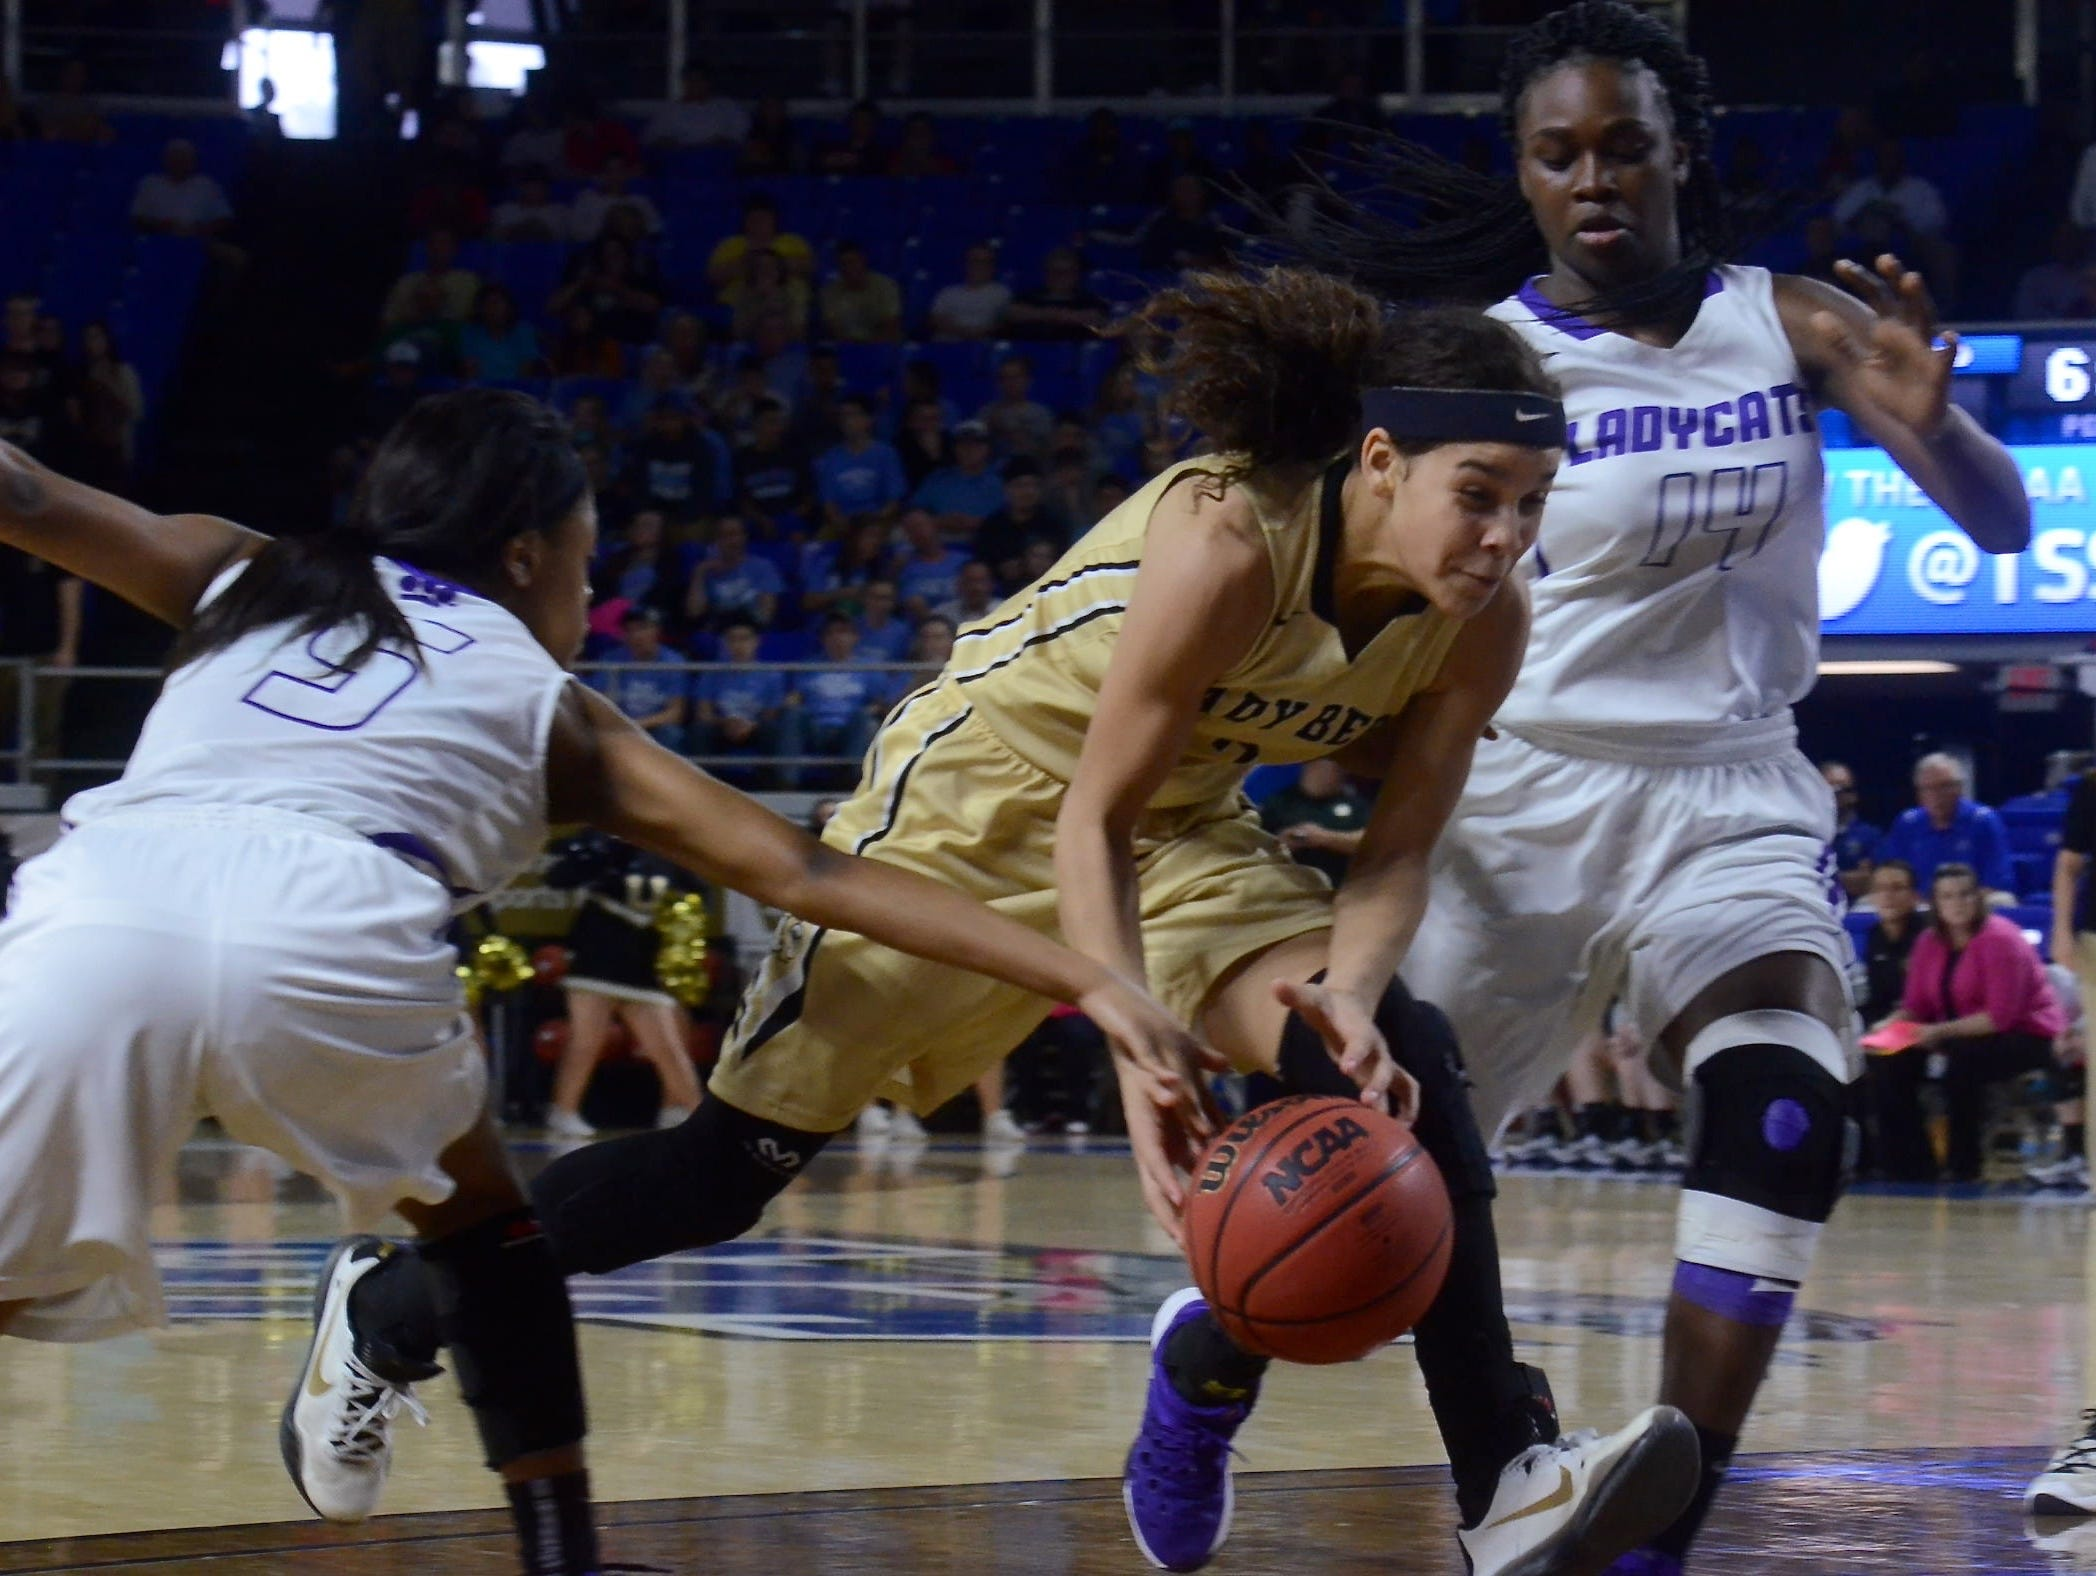 Upperman sophomore Akira Levy (2) dribbles through traffic during Thursday's Class AA quarterfinal against Haywood at MTSU's Murphy Center.